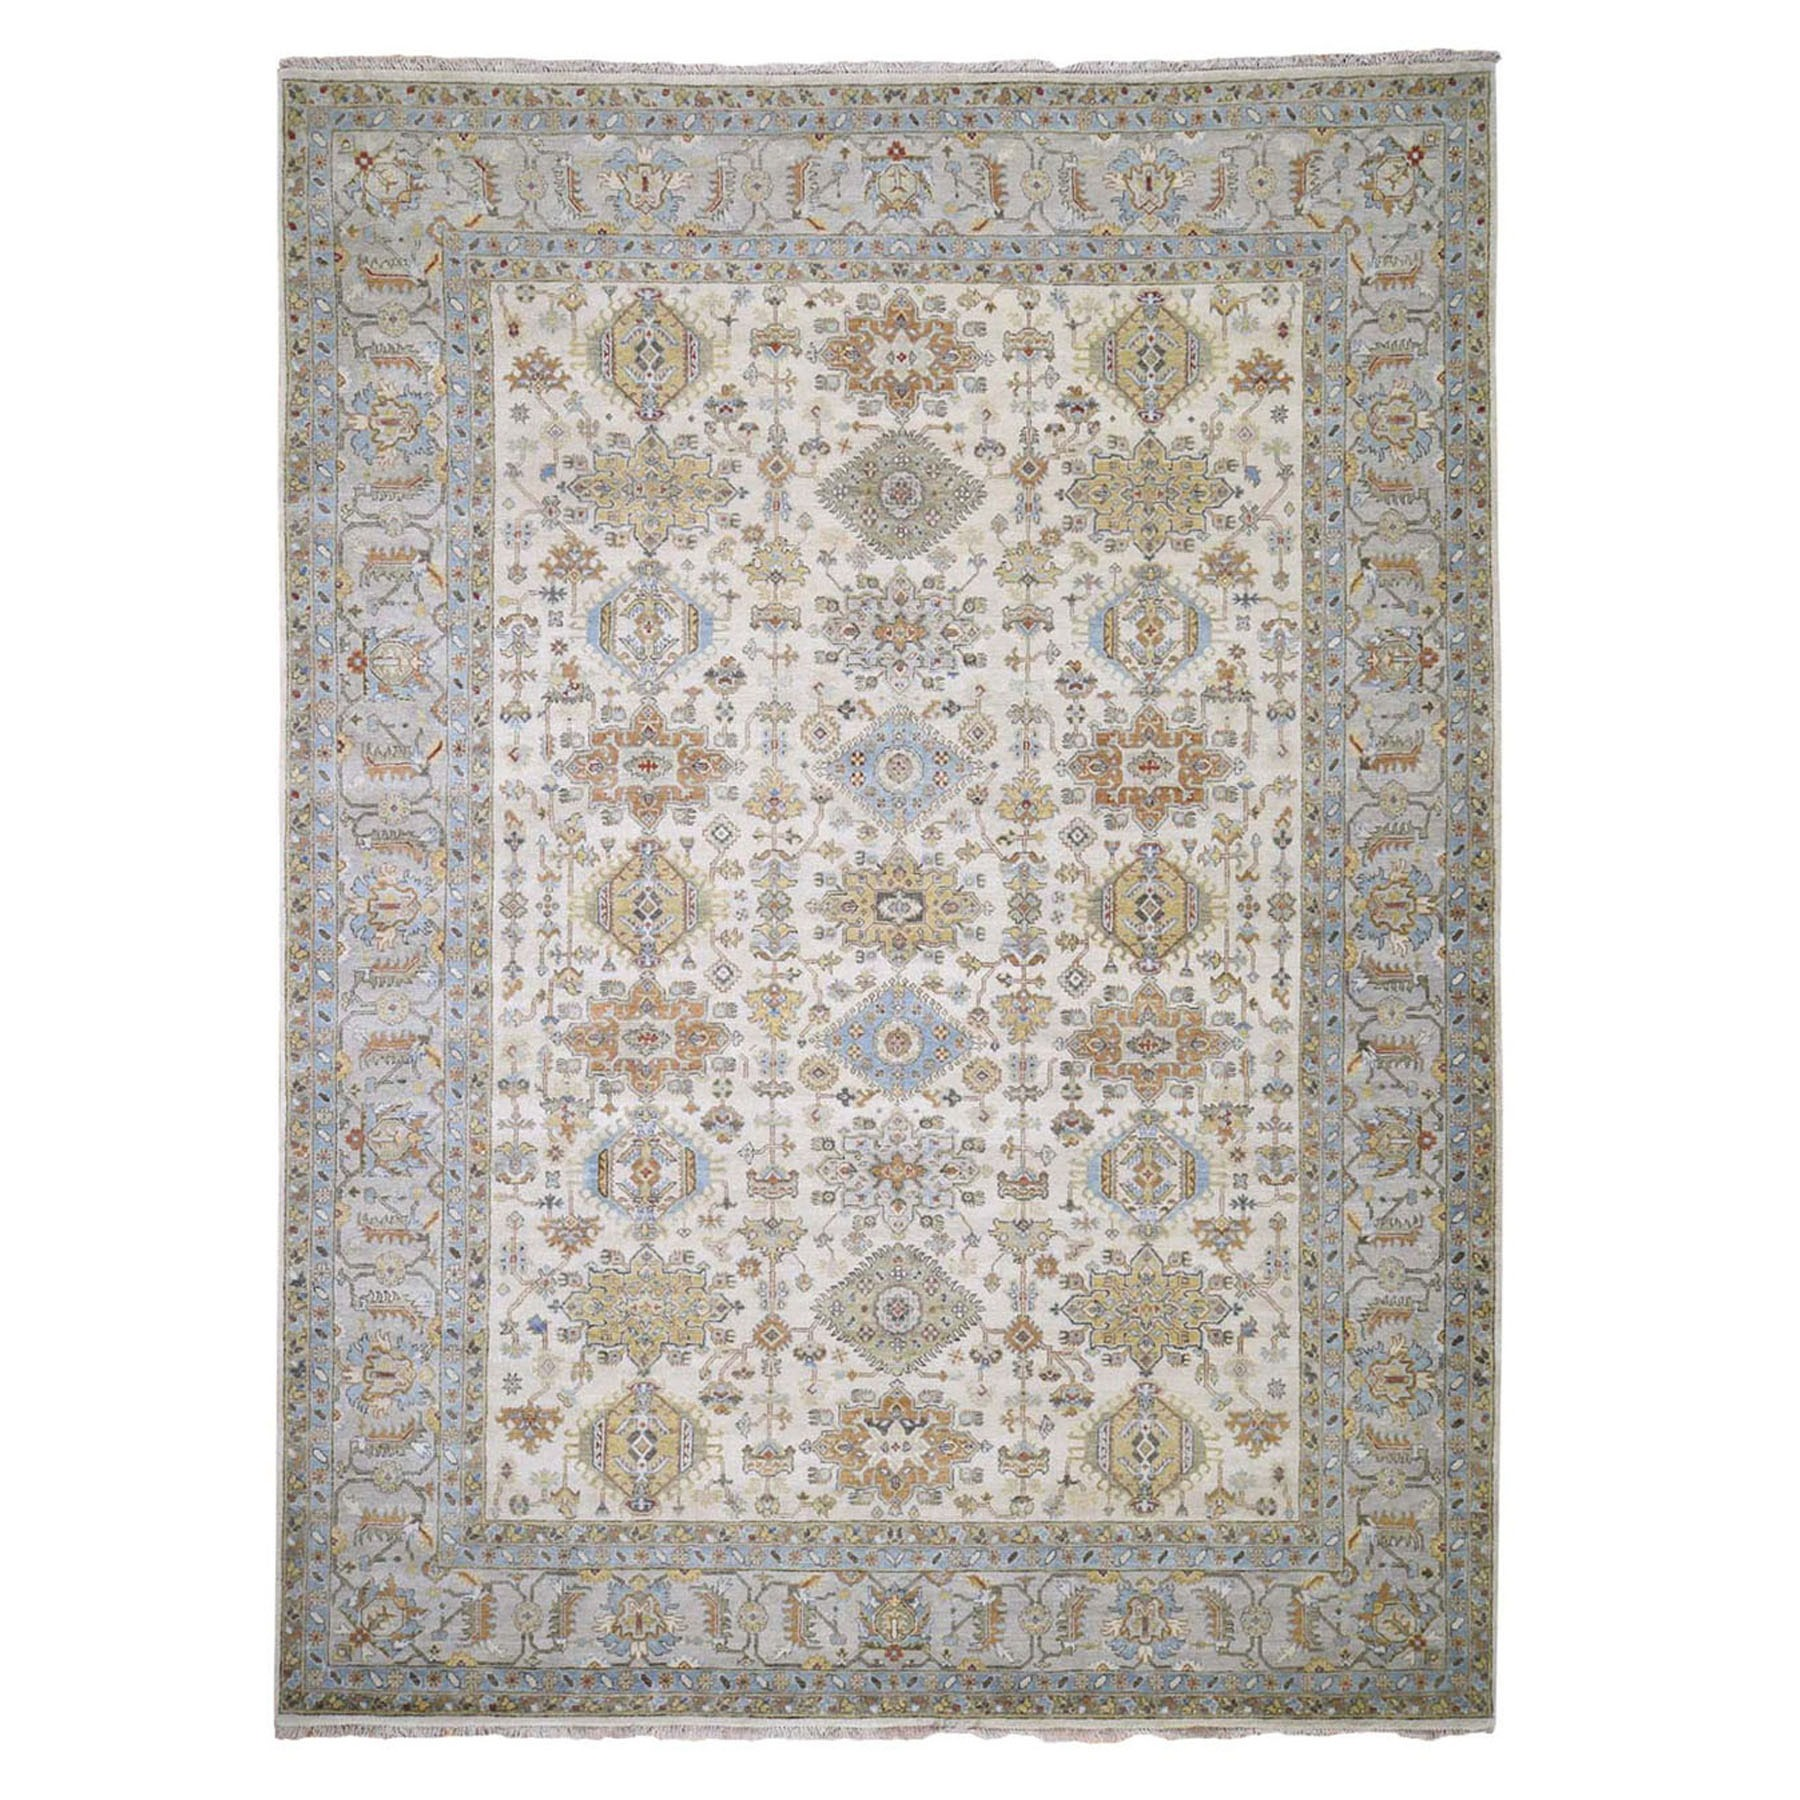 9'X12' Ivory Karajeh Design Pure Wool Hand Knotted Oriental Rug moad9dd9